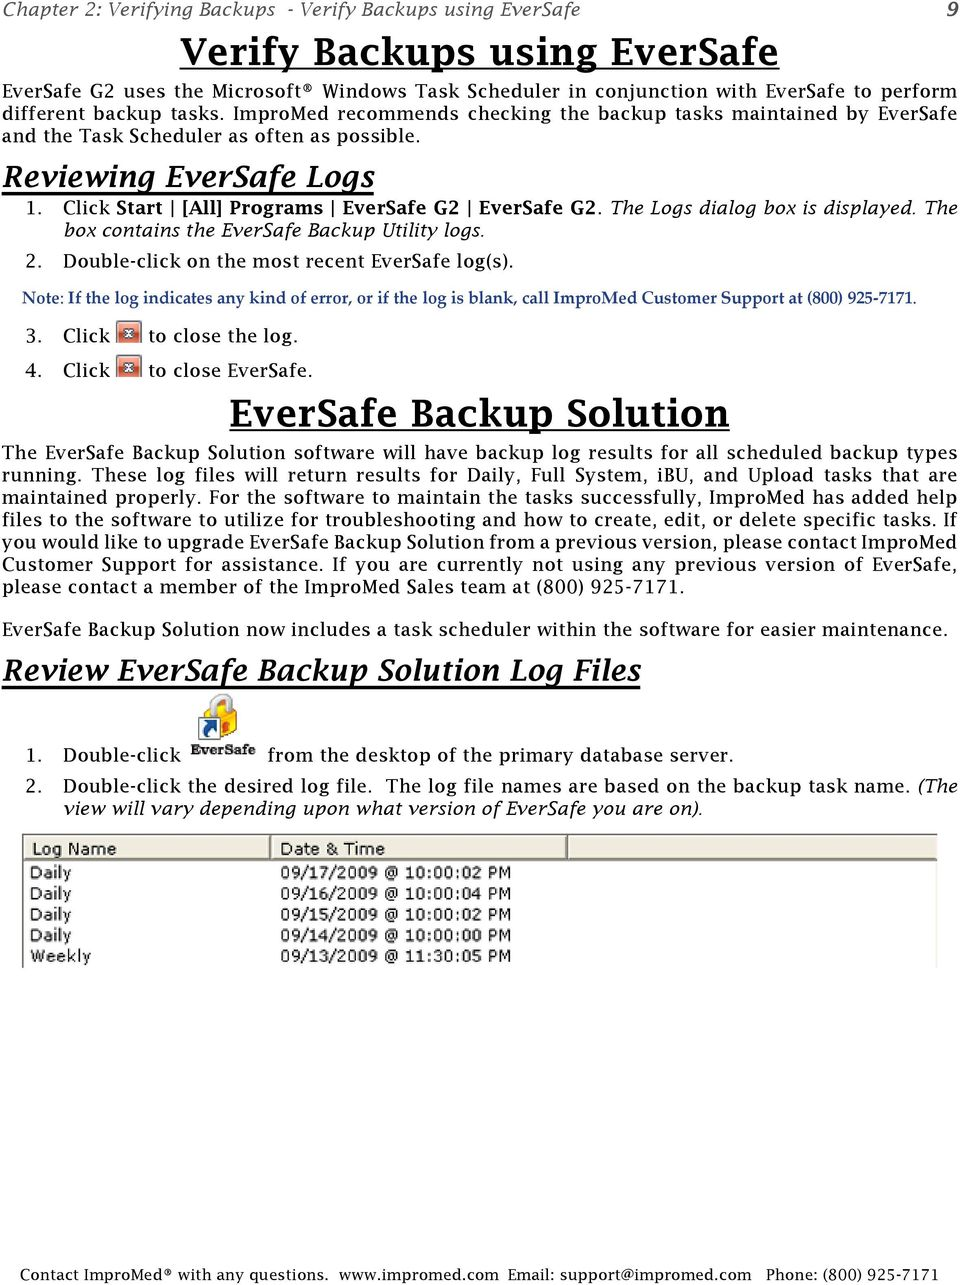 Click Start [All] Programs EverSafe G2 EverSafe G2. The Logs dialog box is displayed. The box contains the EverSafe Backup Utility logs. 2. Double-click on the most recent EverSafe log(s).